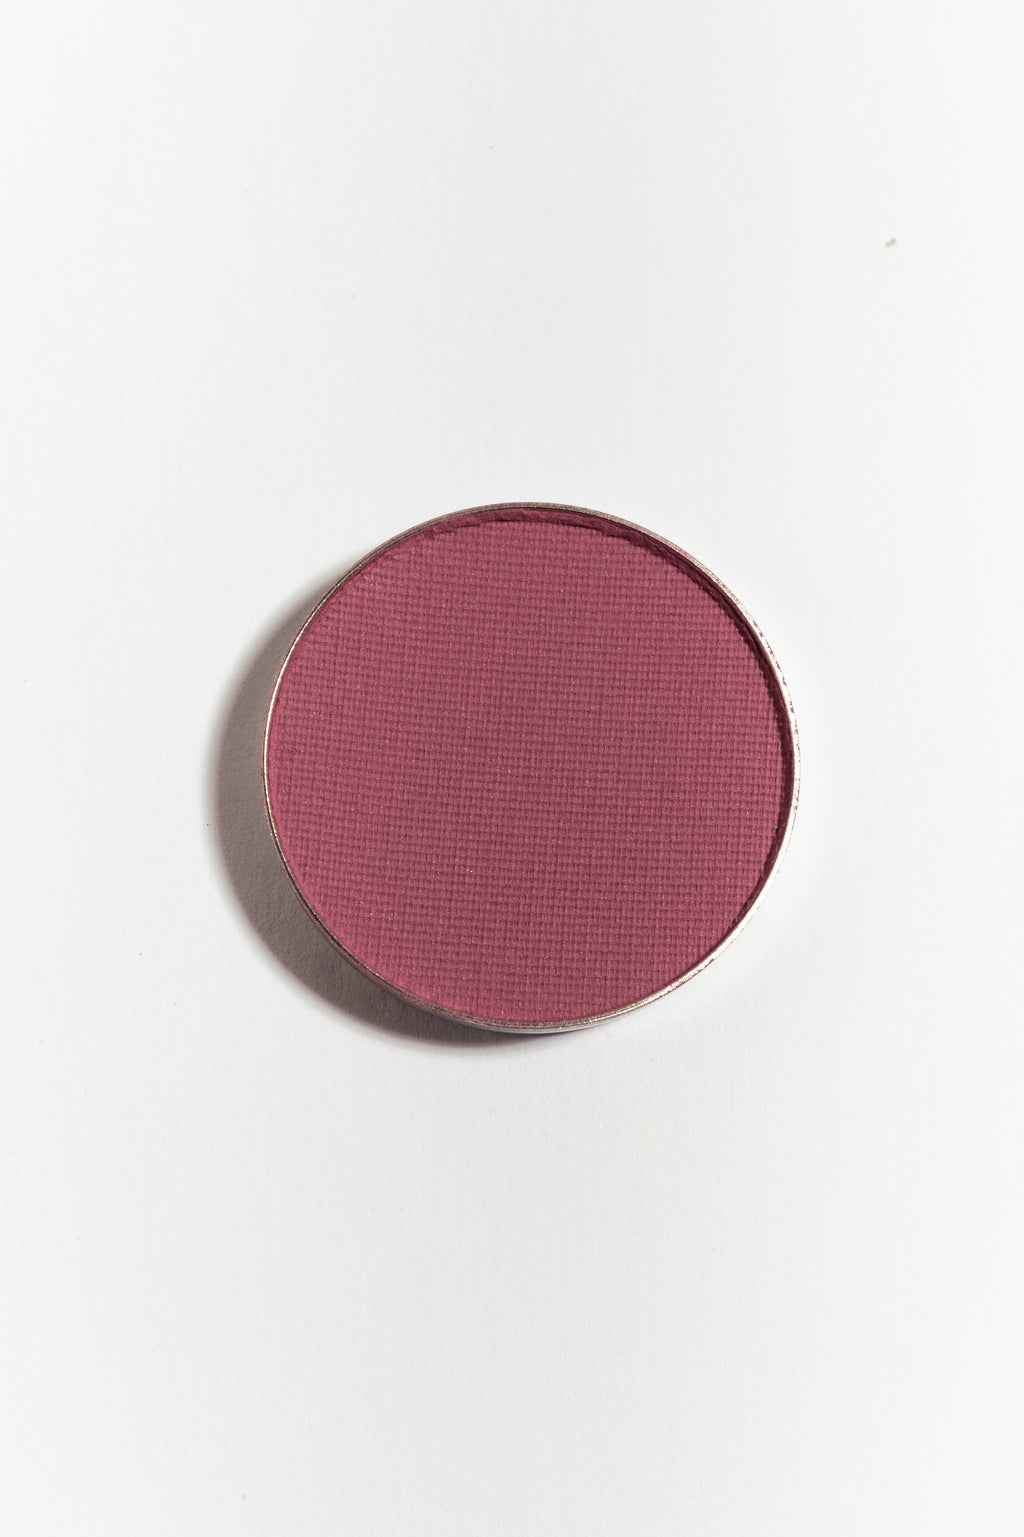 Eye shadow pan in Mulberry